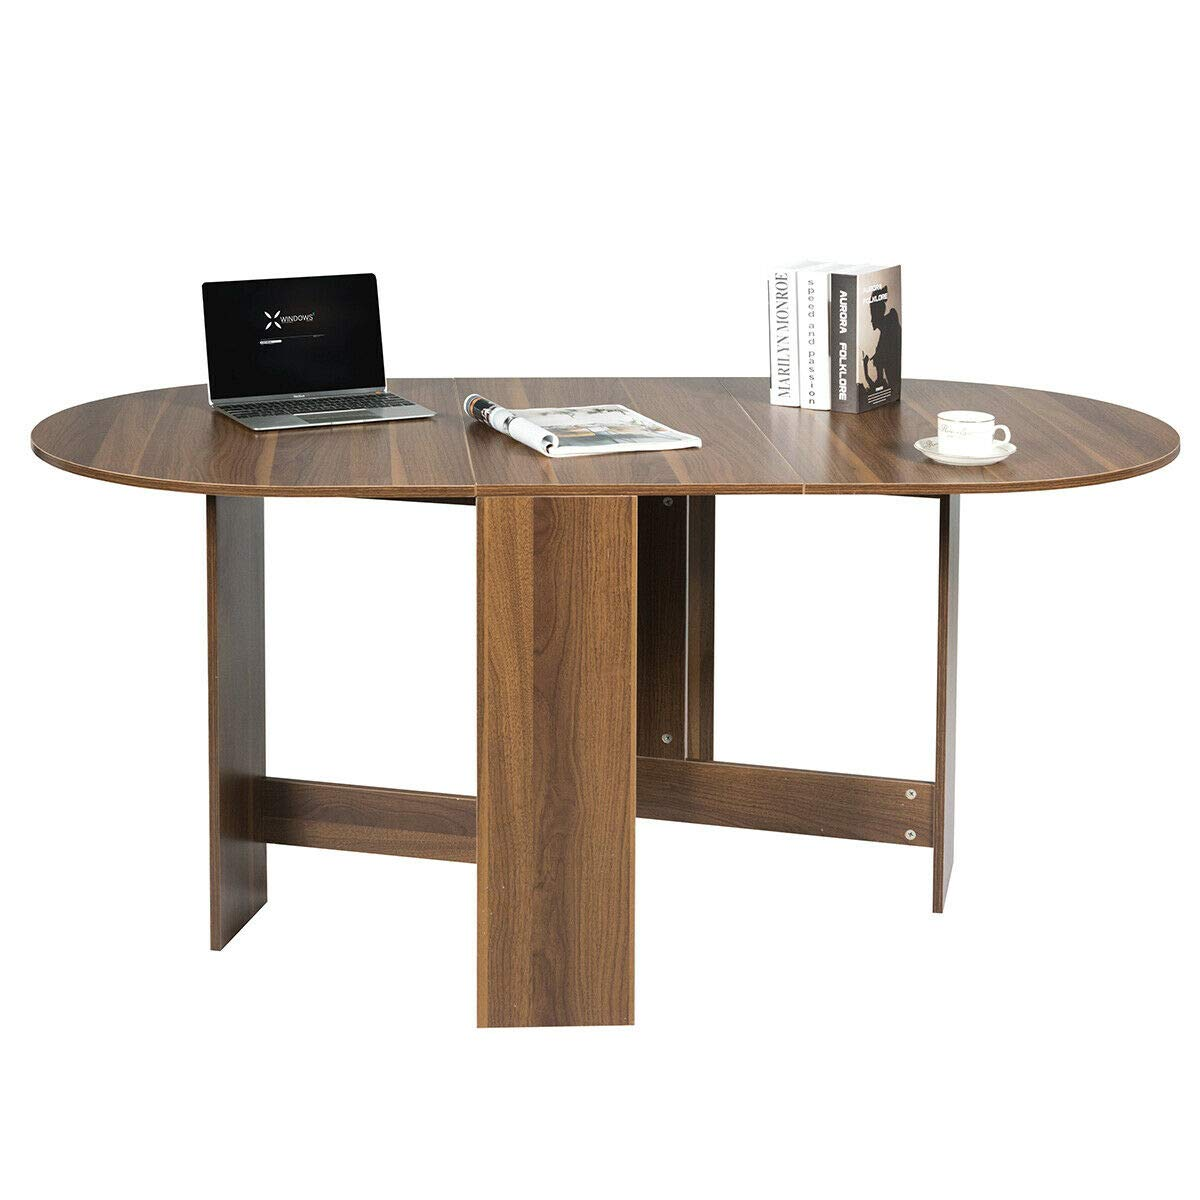 Giantex Folding Dining Table, Drop Leaf Extendable Multifunction Table with Humanized Round Edges, Space Saverfor Dining Room Kitchen Home Compact Design Wood Grain Furniture